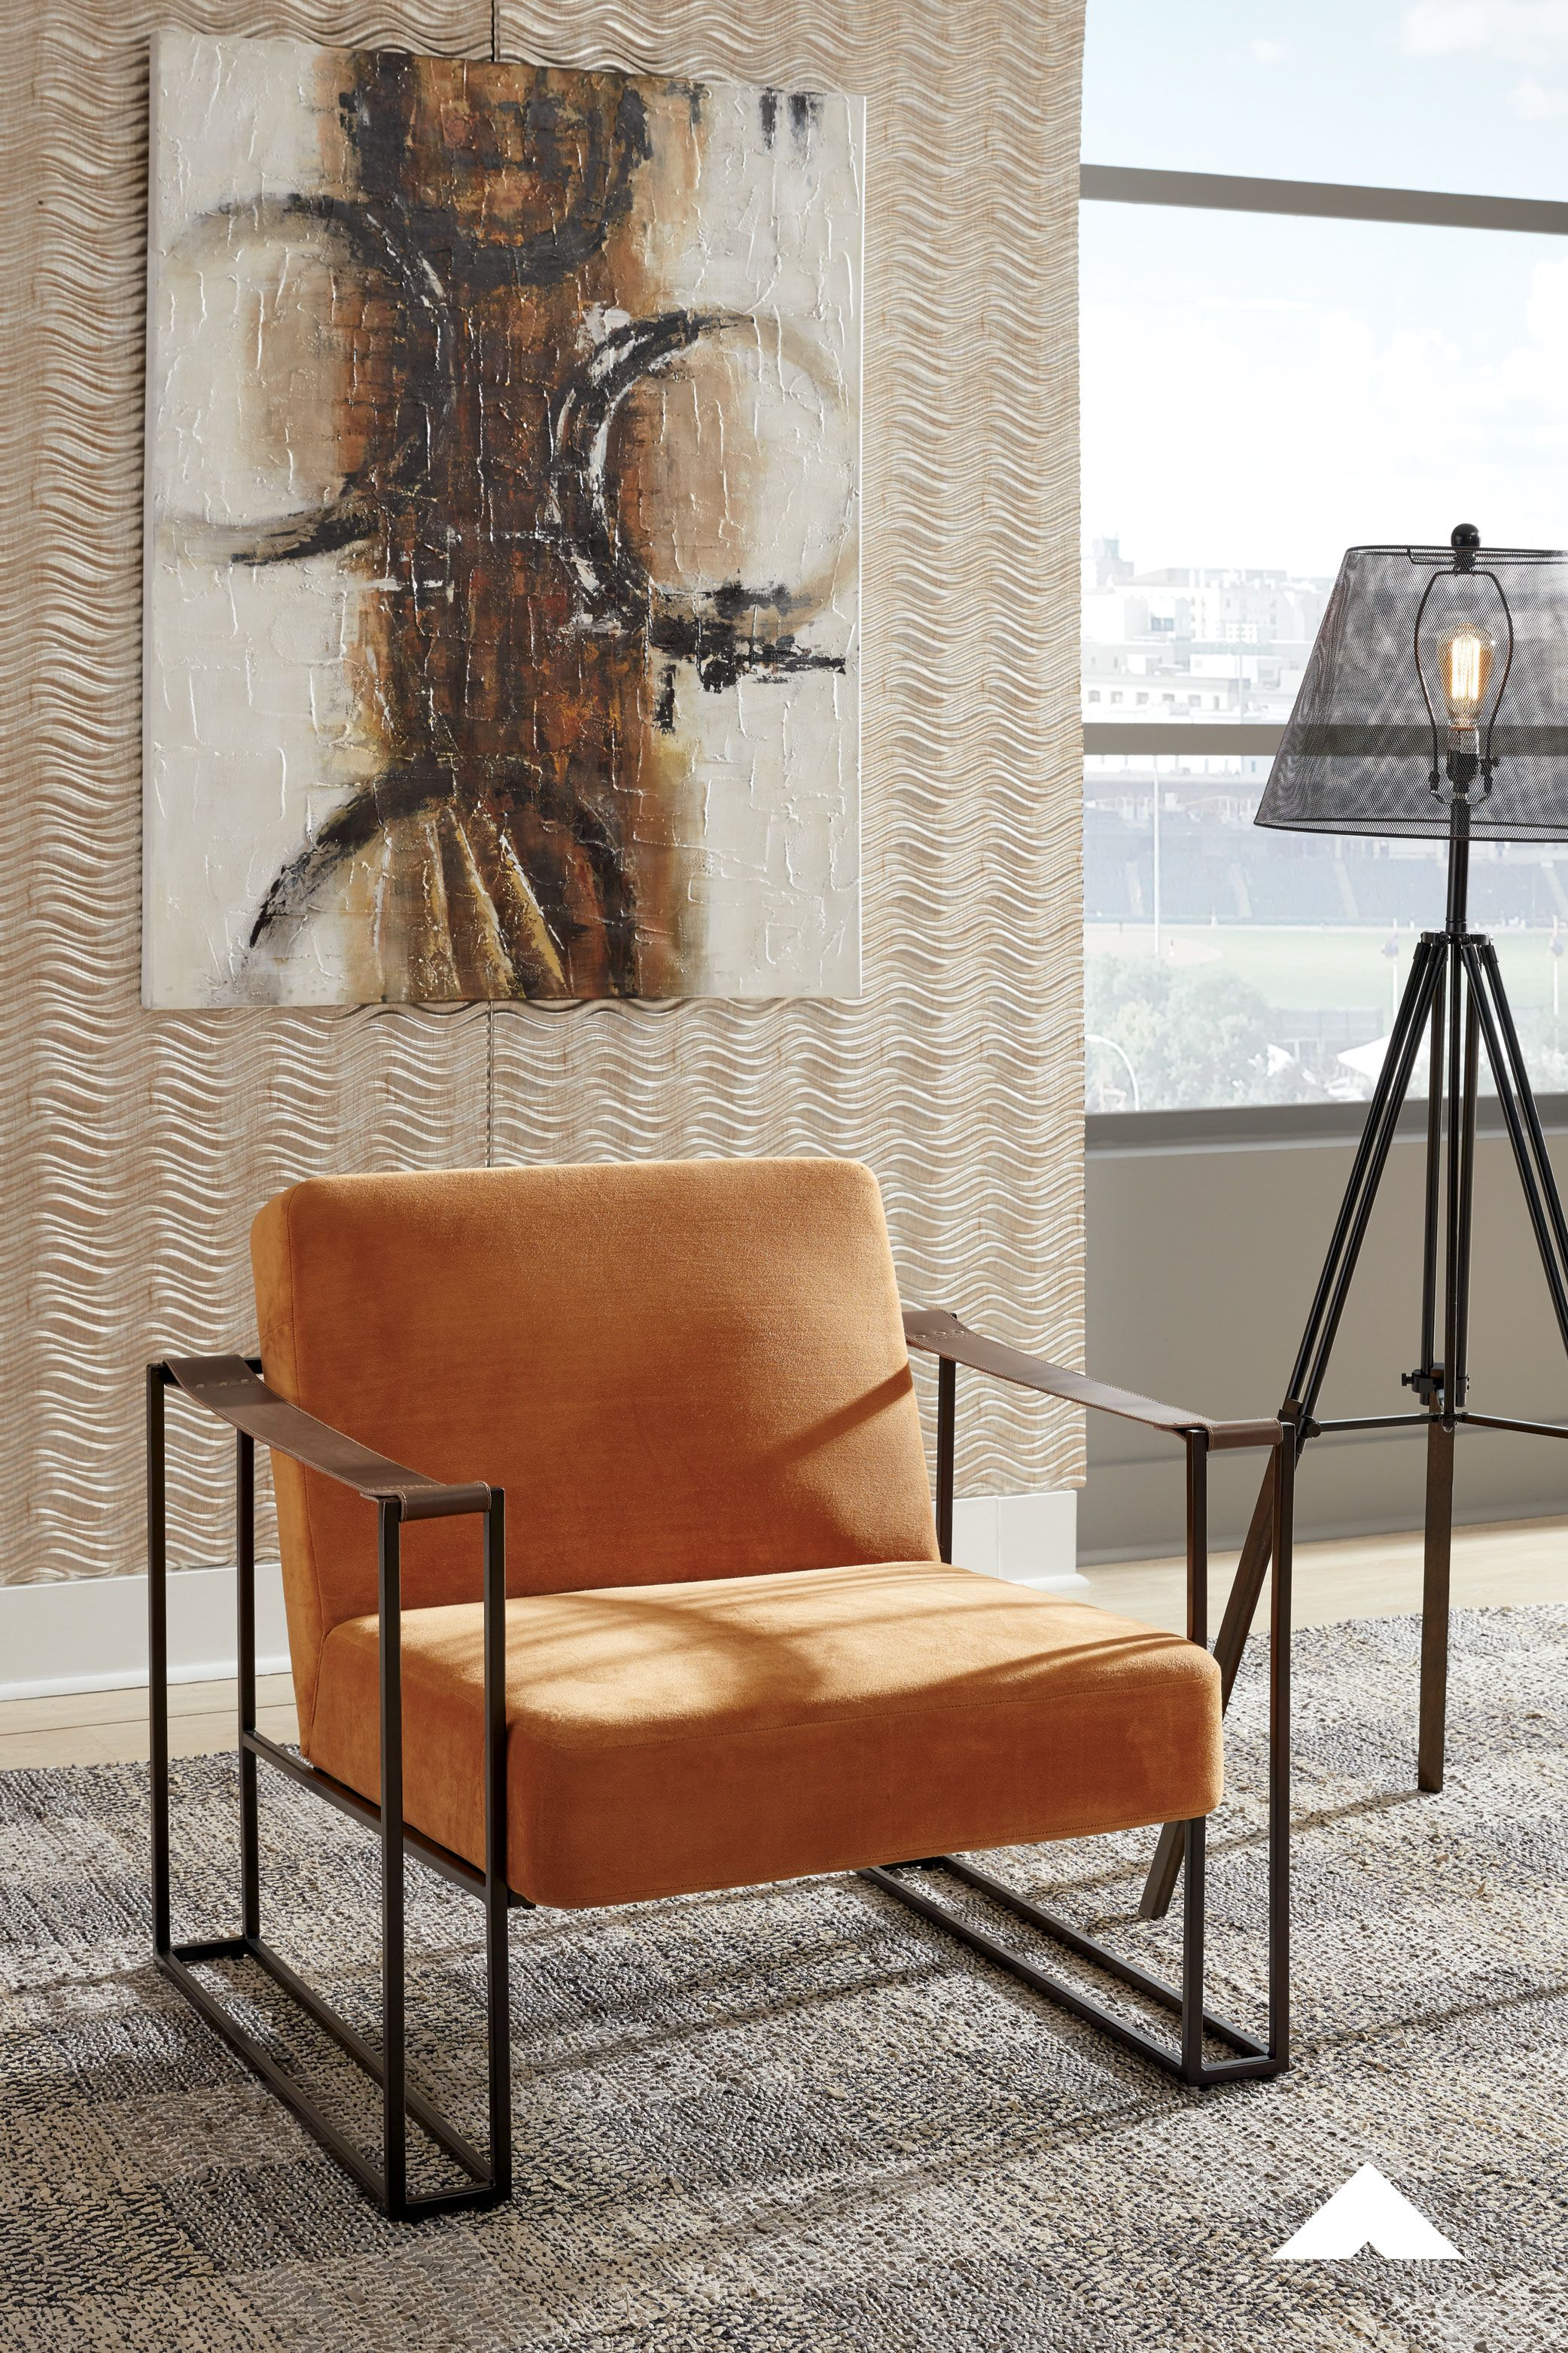 Kleemore Amber Accent Chair By Ashley Furniture Less Is So Much More With This Ultra Cool Accent Chair A Mastery I In 2020 Upholstered Seating Home Ashley Furniture